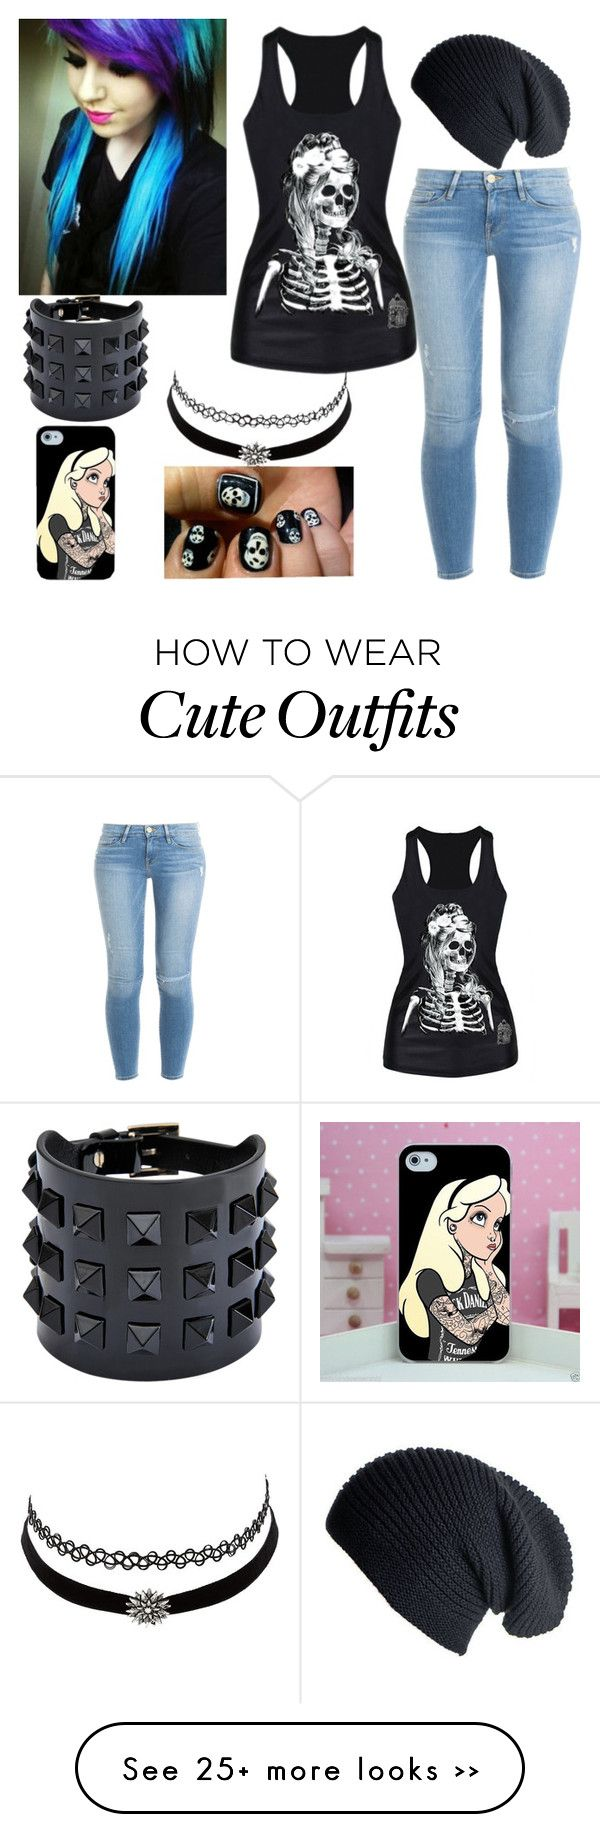 """Cute Emo Outfit"" by i-love-pandas-993 on Polyvore"